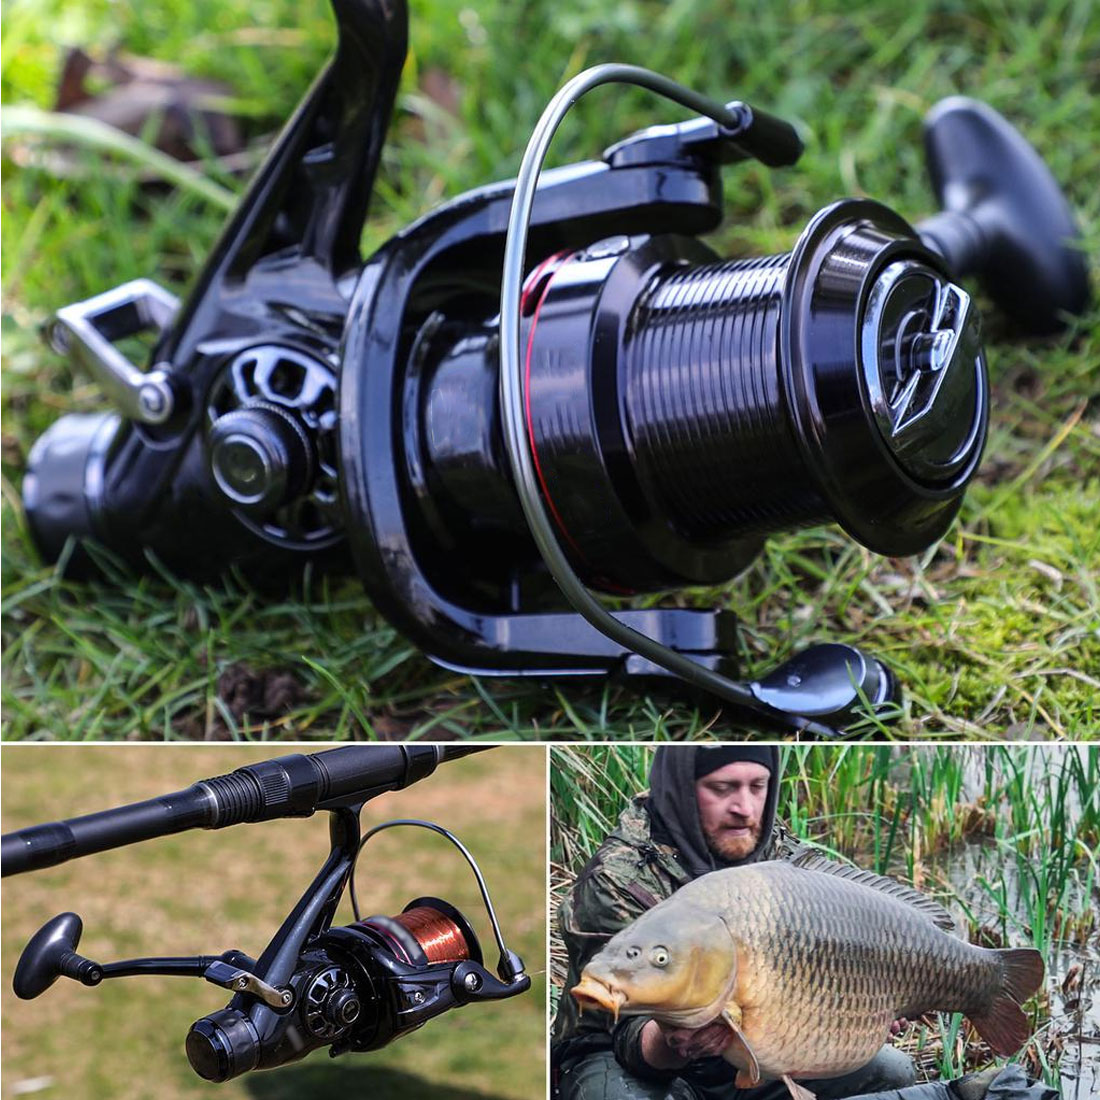 Professional Fishing Wheel 12 BB Series 5.1:1 3000-7000 Speed Spinning Fishing Reel Interchanged Left/right Hand Wheel